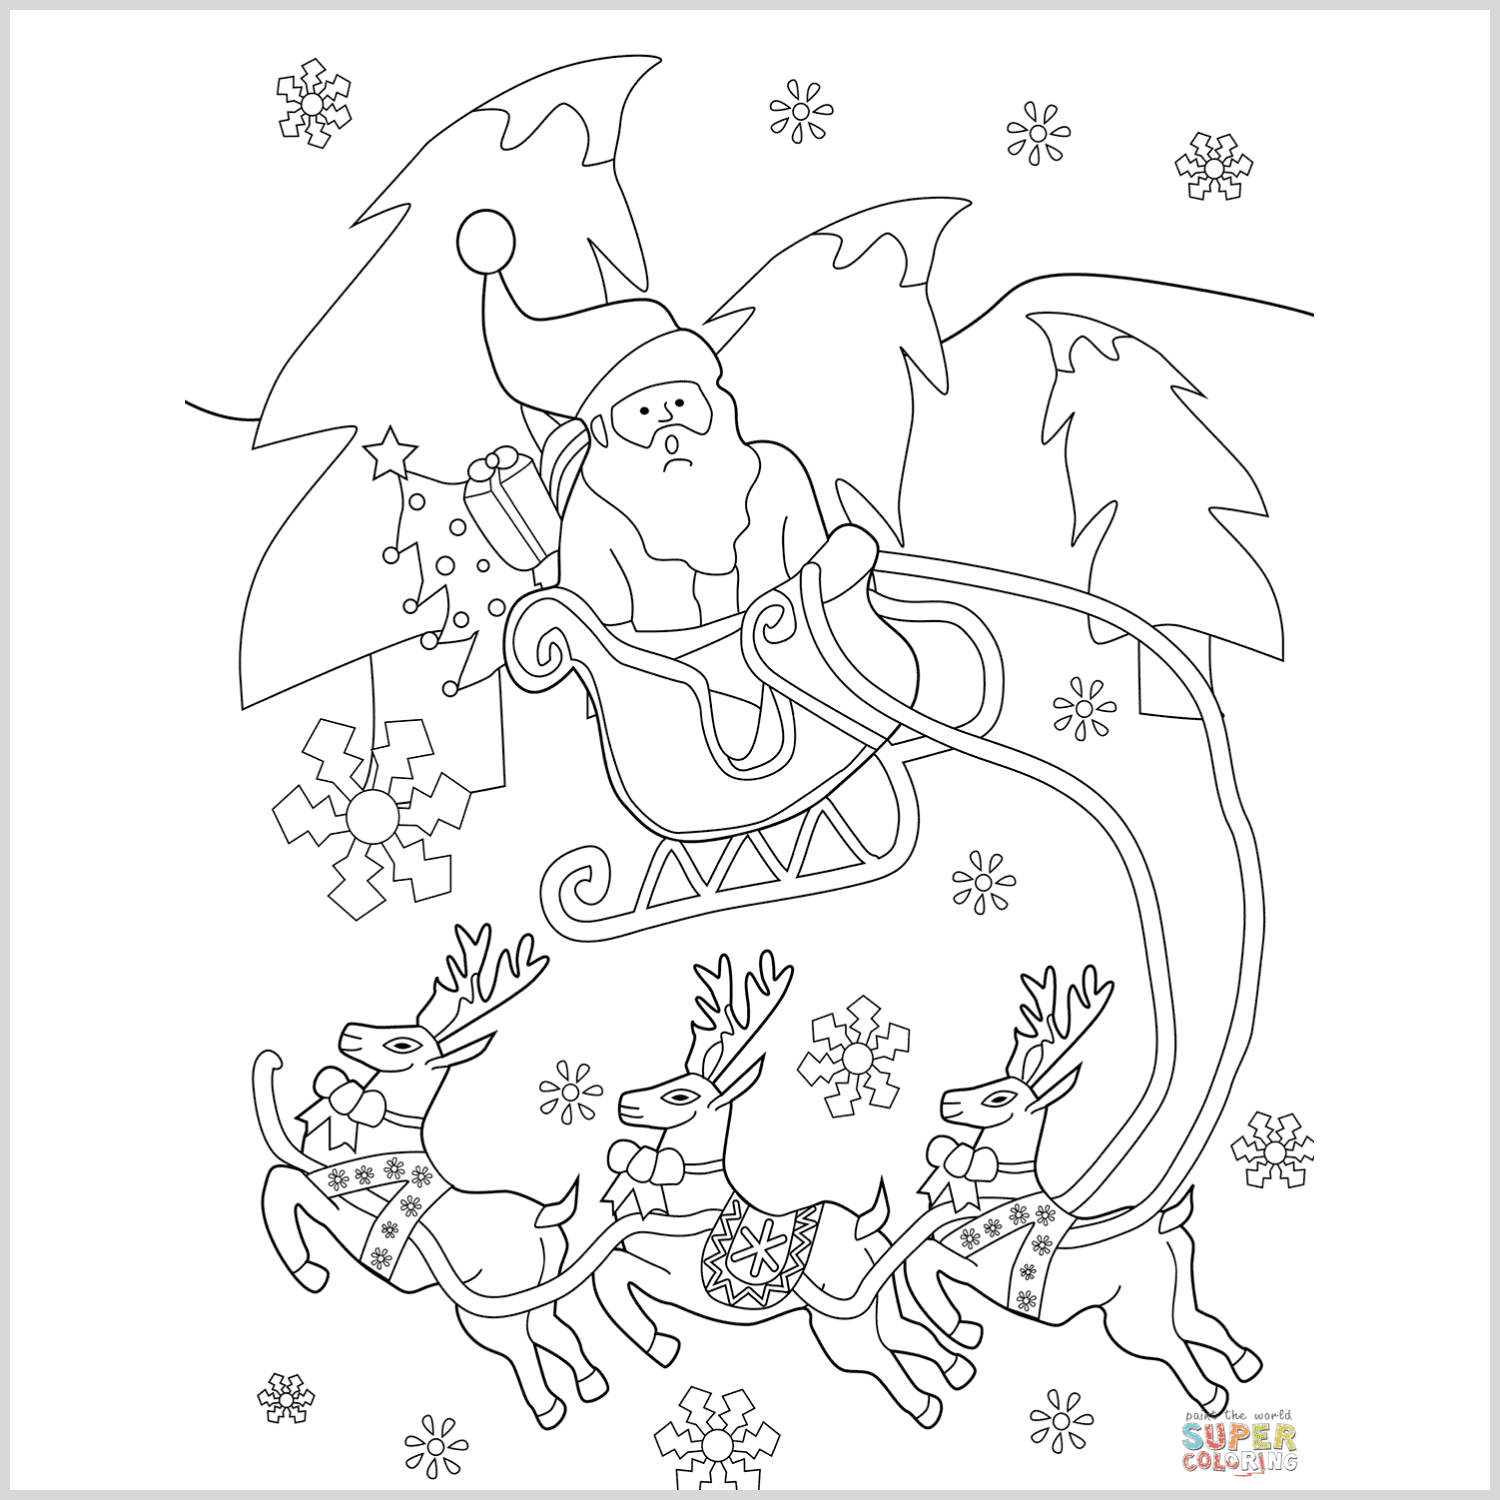 Santa on His Sleigh with Reindeers coloring page cover image.